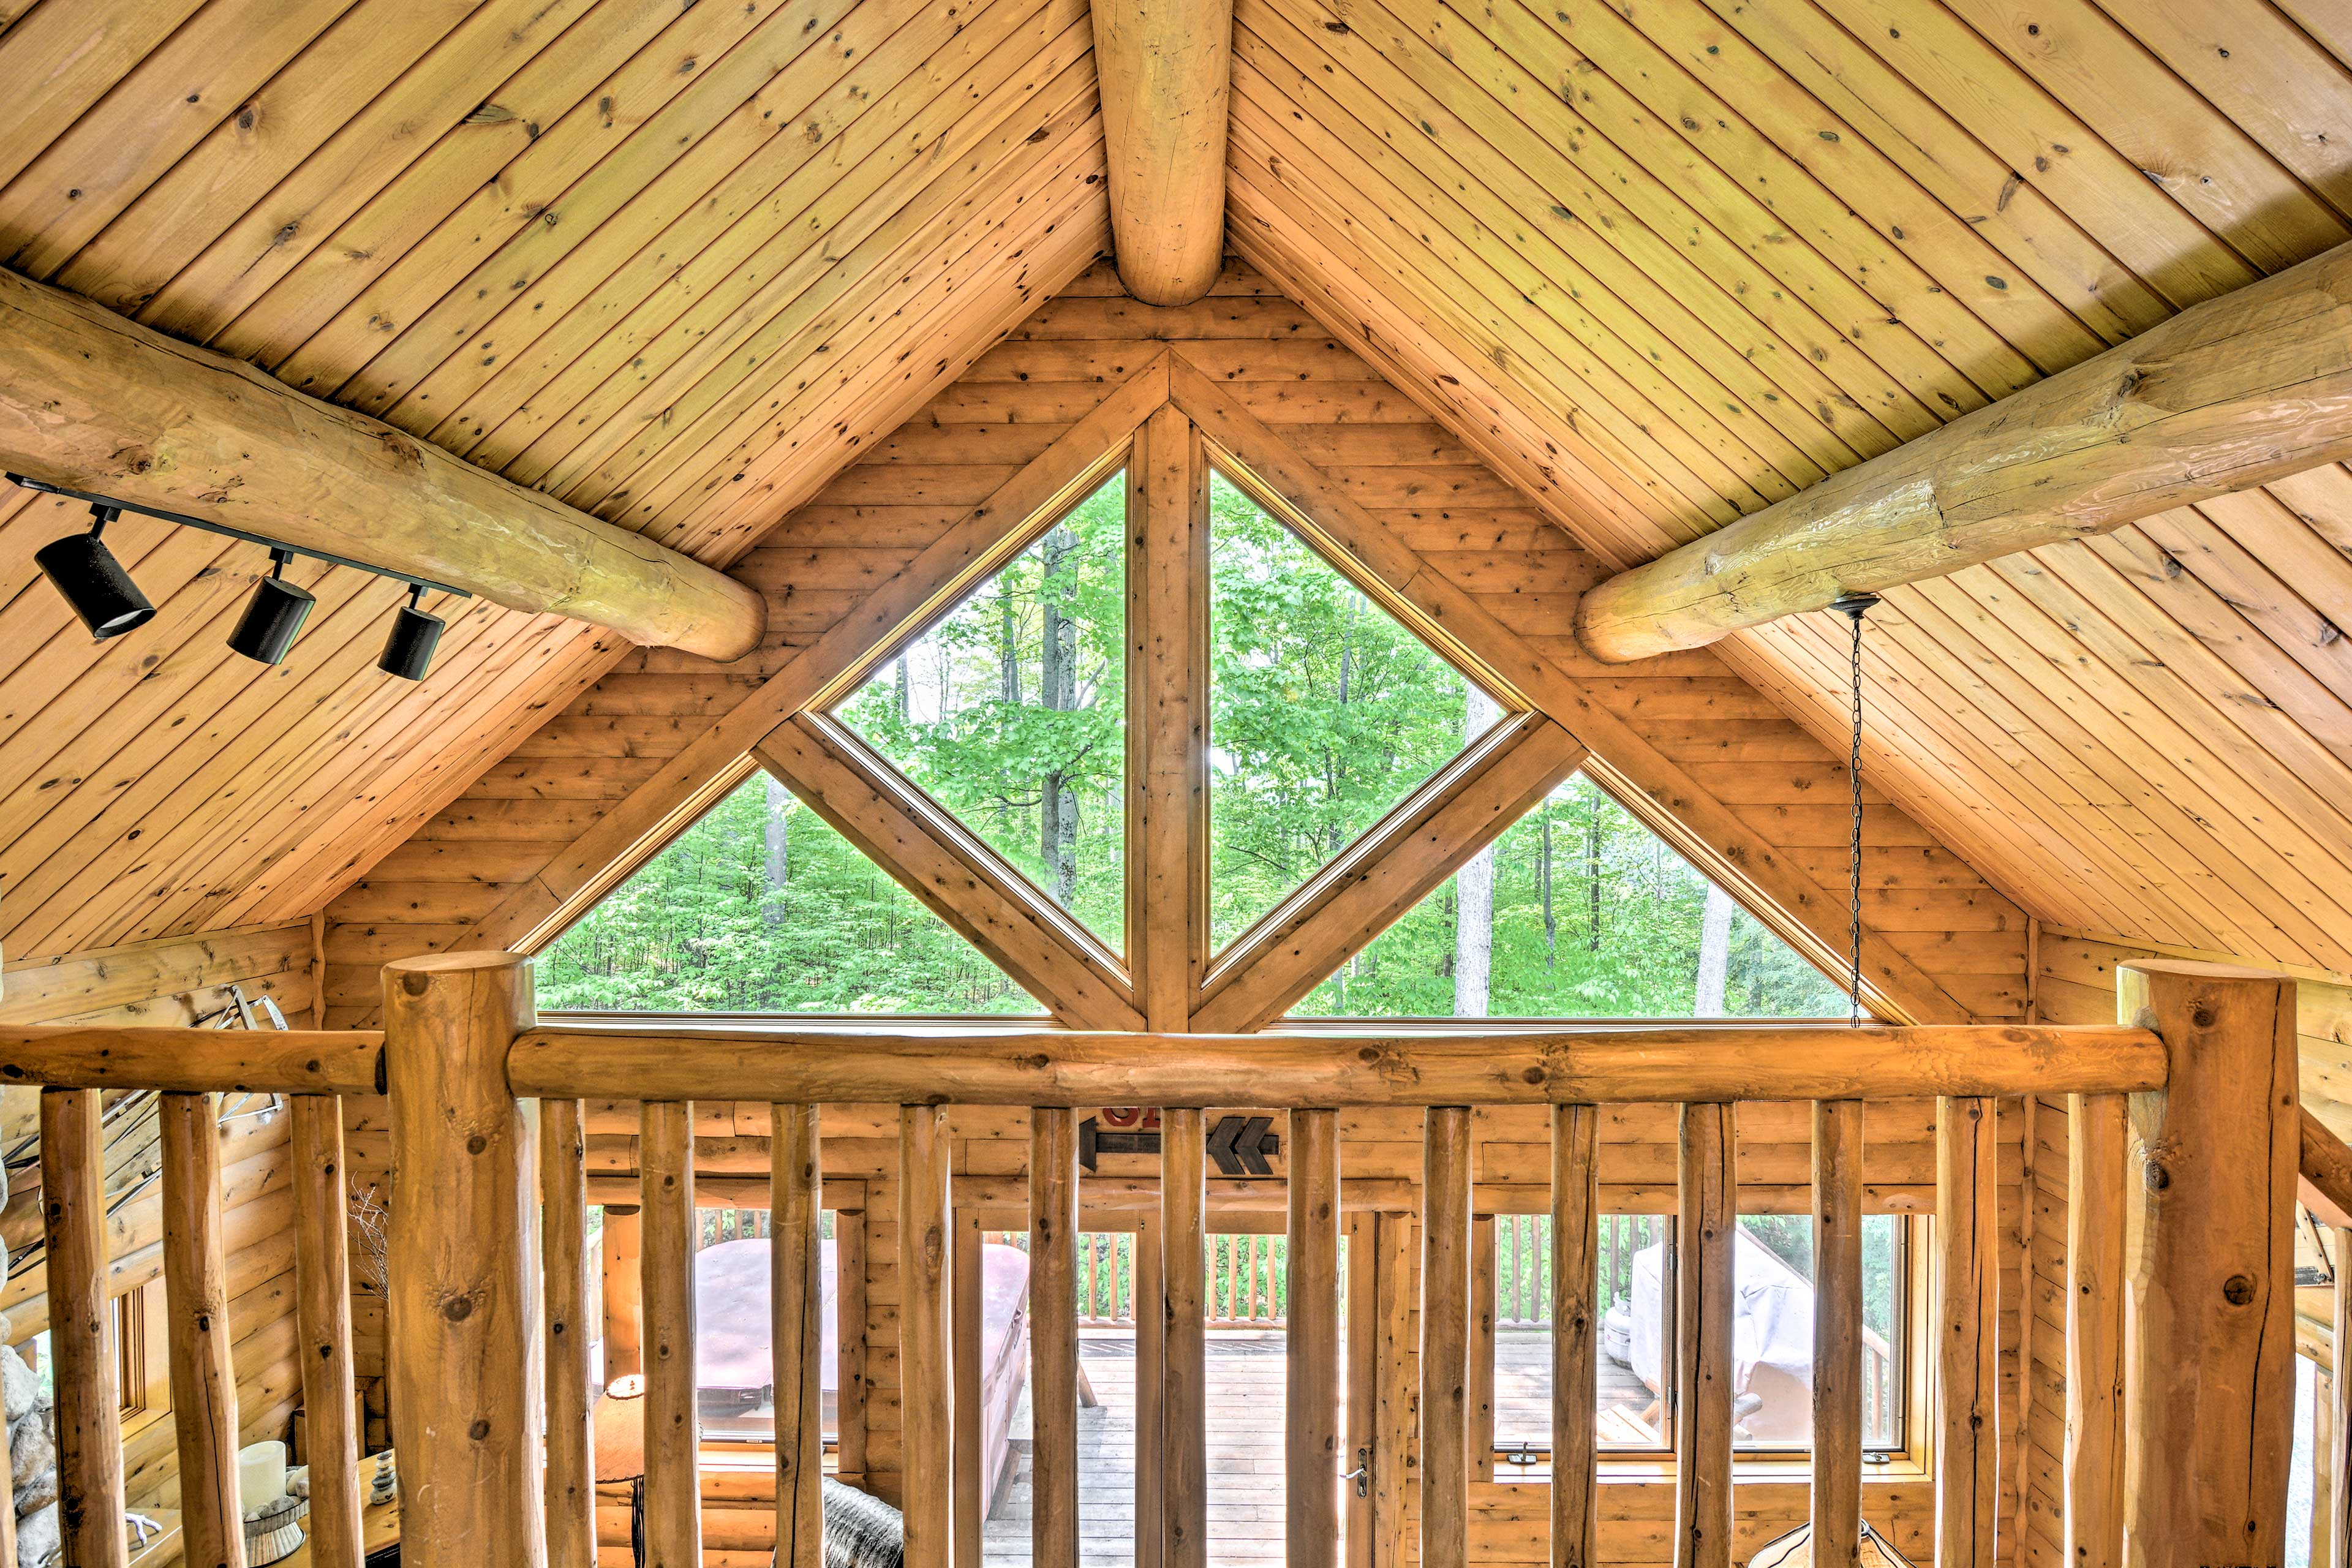 Upstairs, a loft overlook provides stunning views of the wilderness!